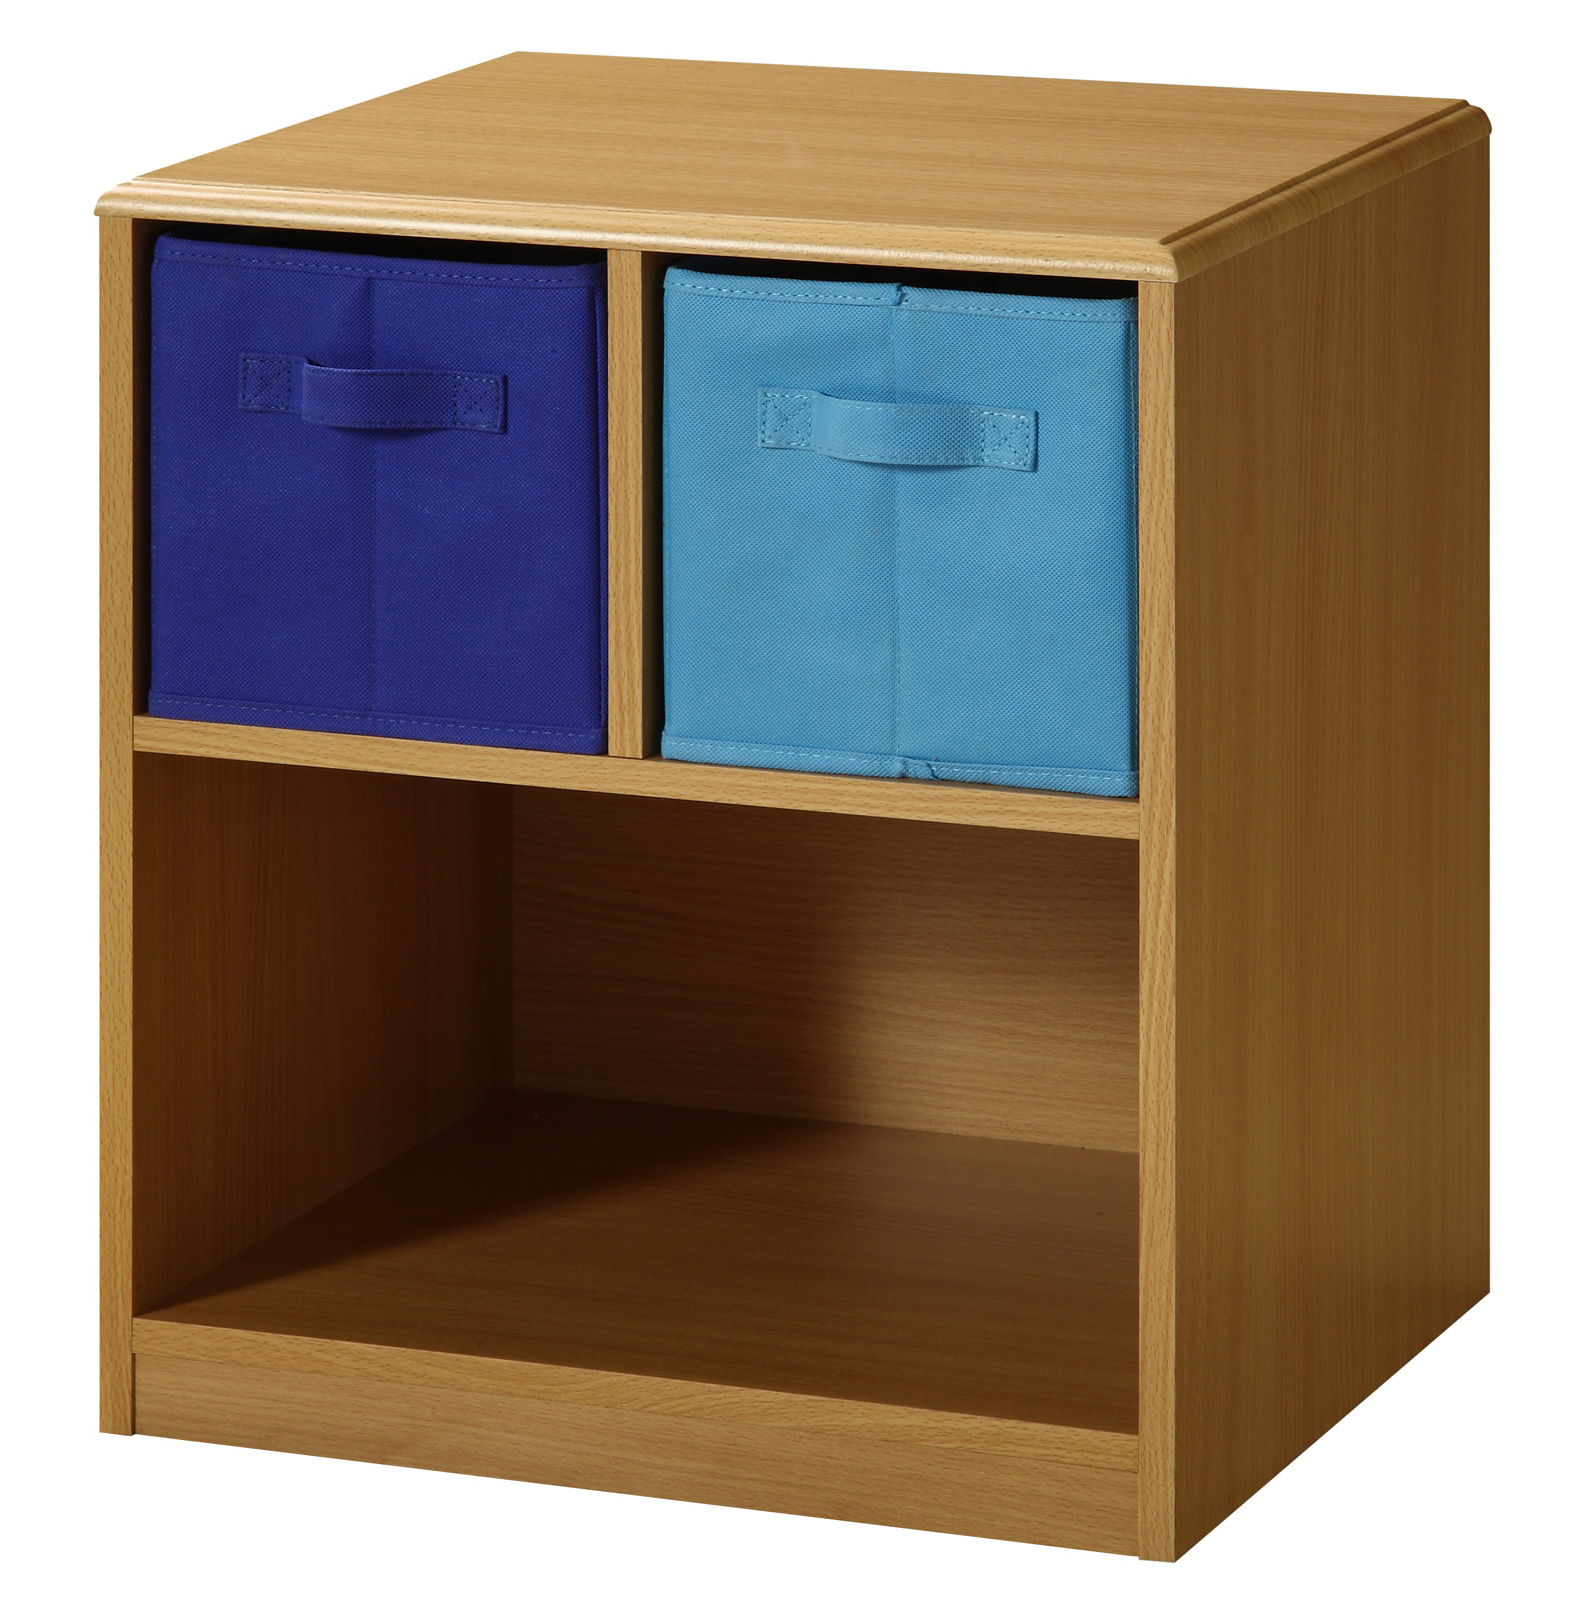 wire cube plastic connectors kids nightstand with baskets by 4d concepts kids storage